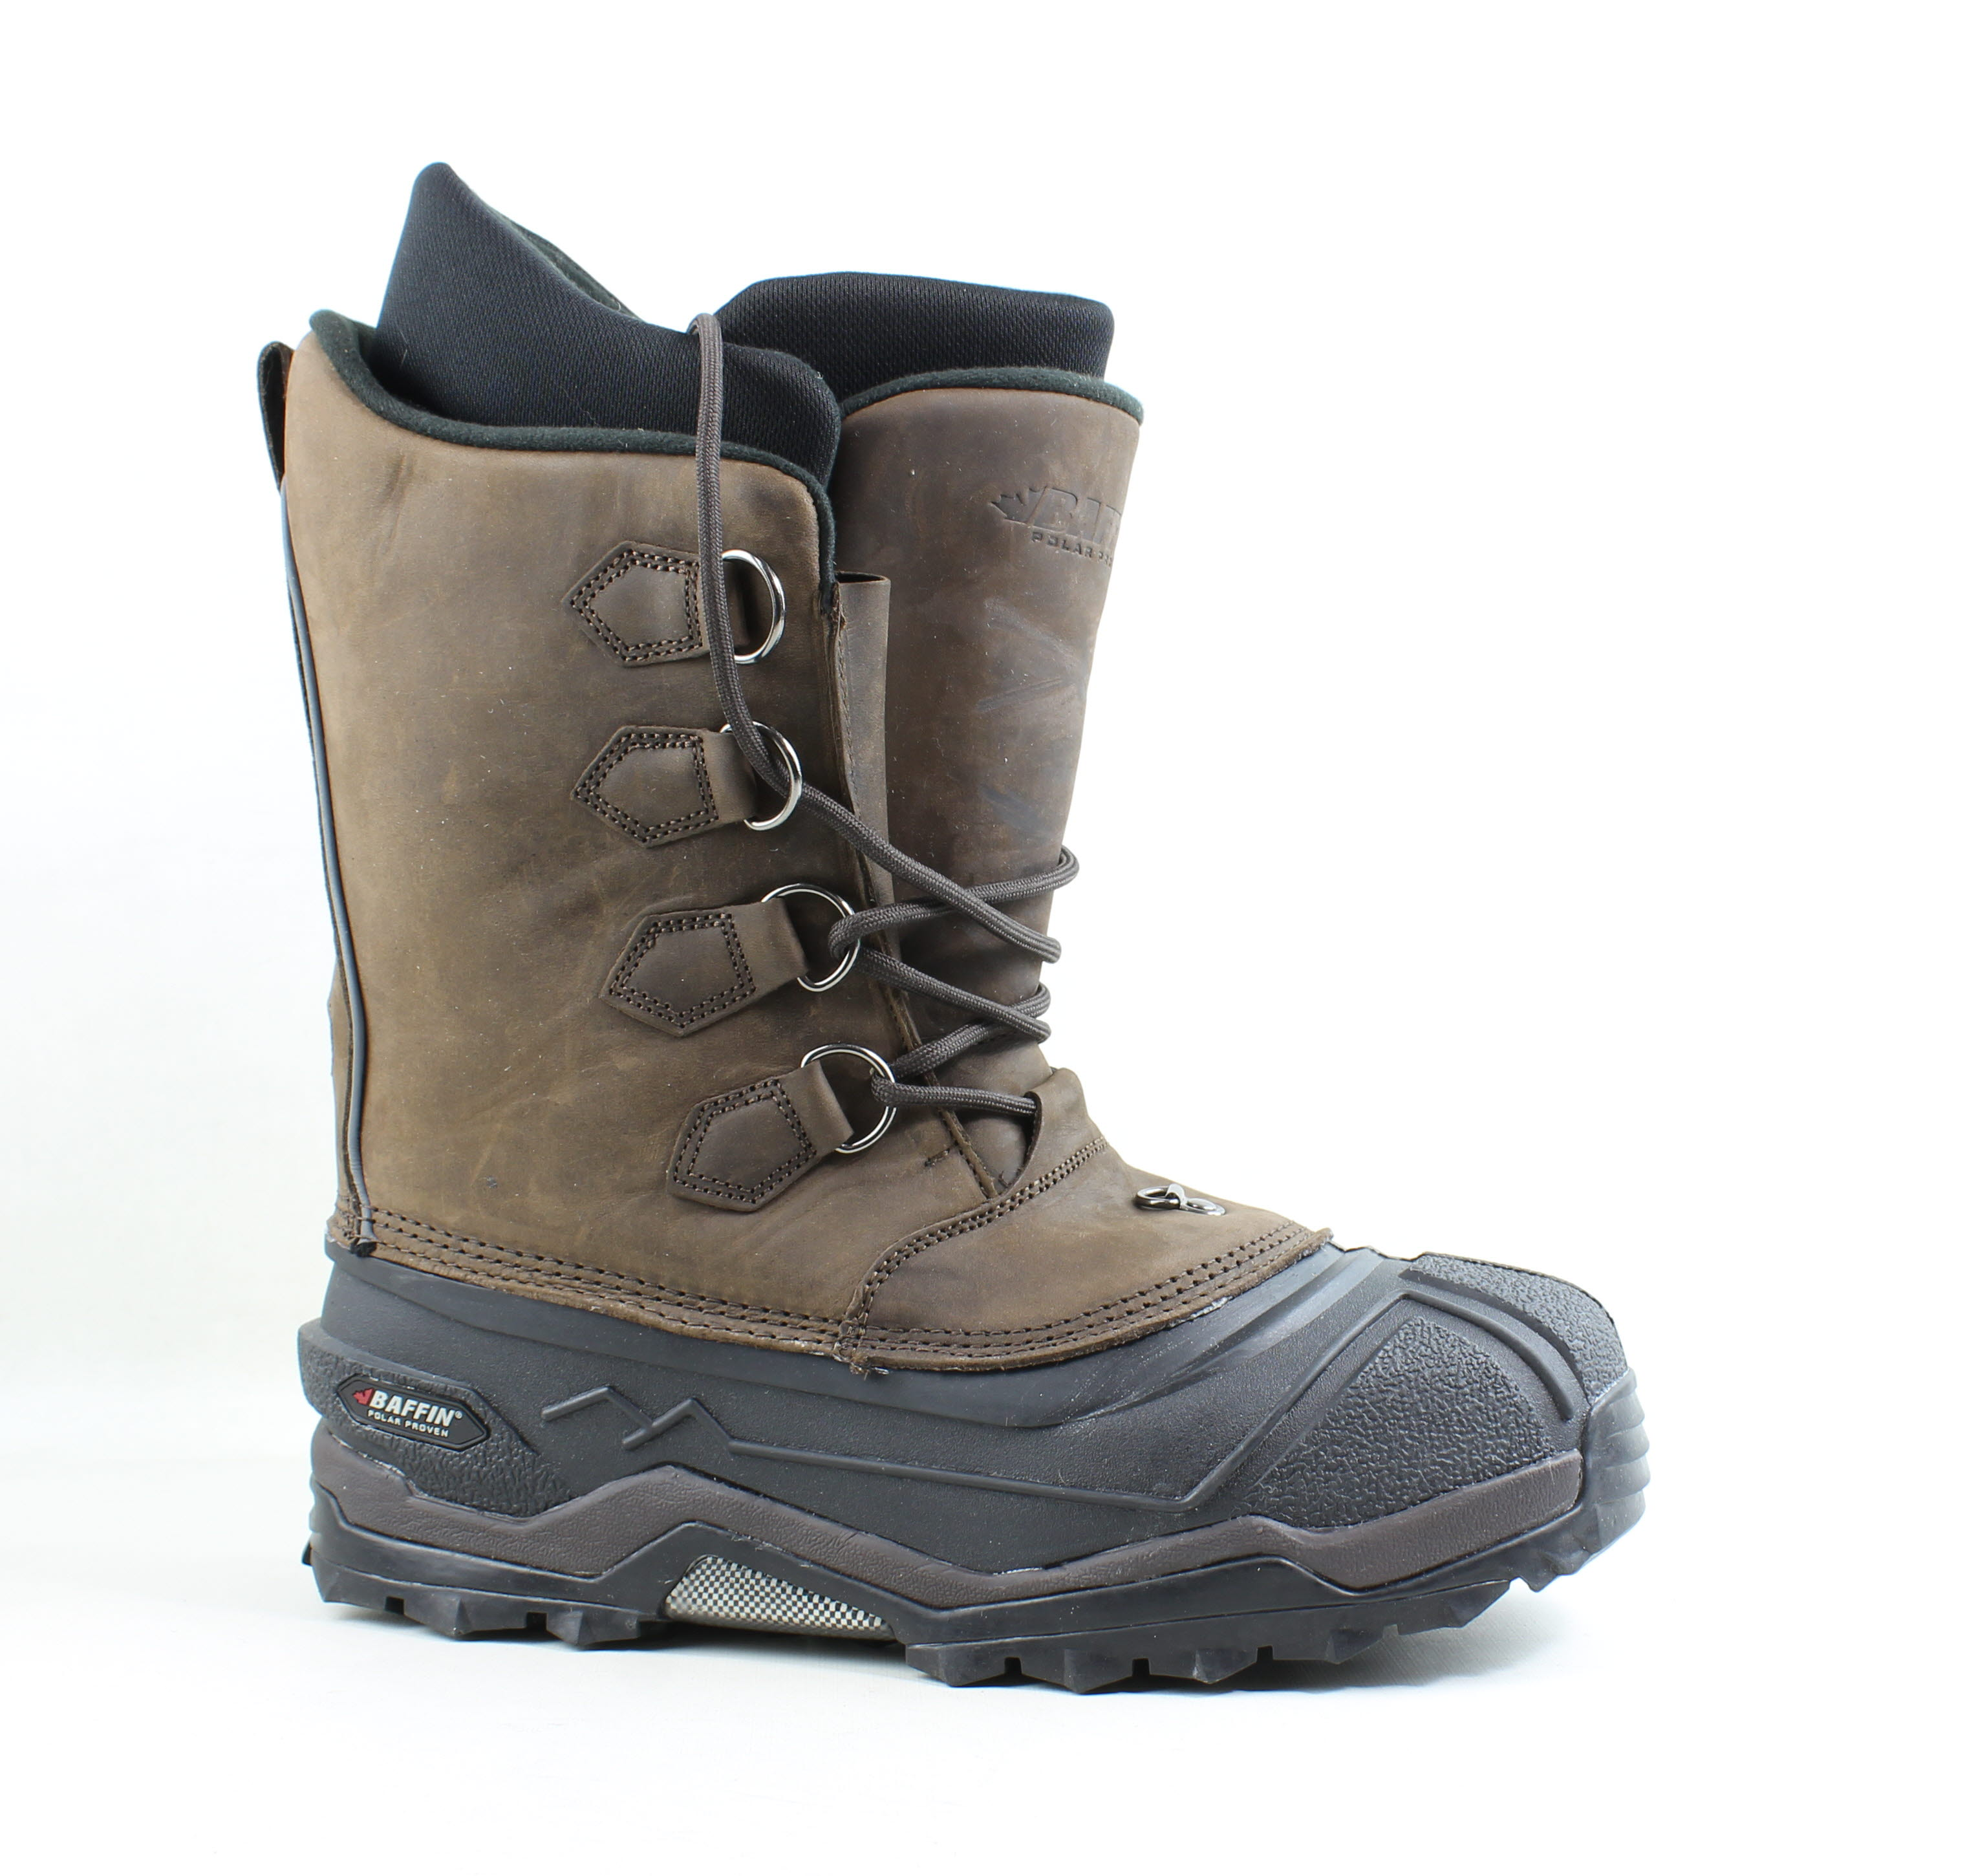 b671e8dfd88 Details about Baffin Mens Control Max Worn Brown Snow Boots Size 11 (462322)